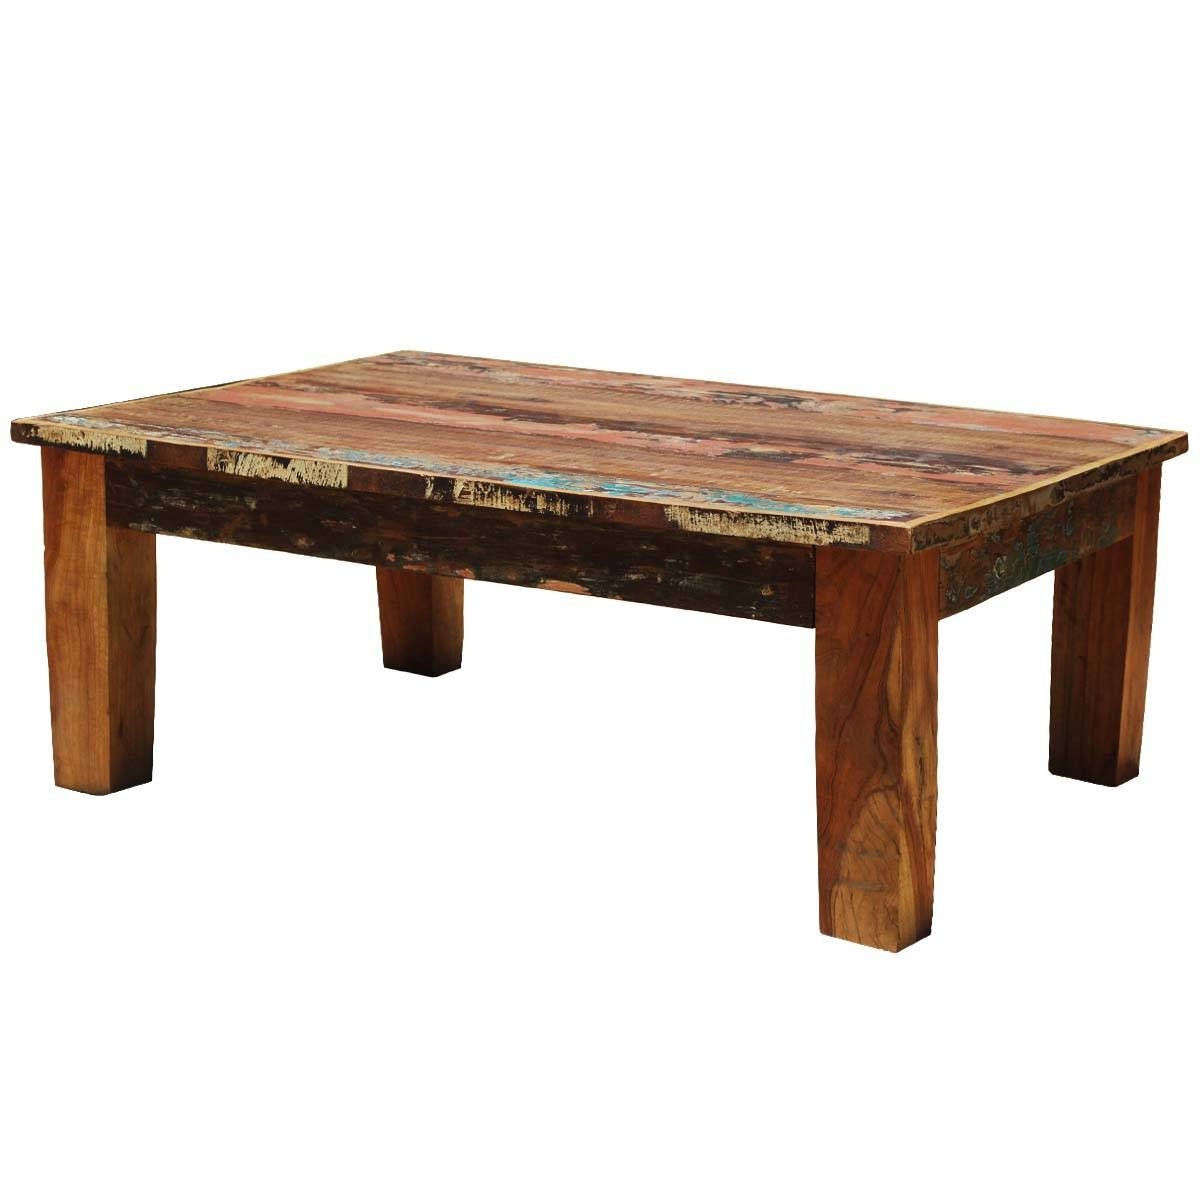 Appalachian Rustic Mixed Reclaimed Wood Coffee Table throughout Reclaimed Wood Coffee Tables (Image 1 of 15)